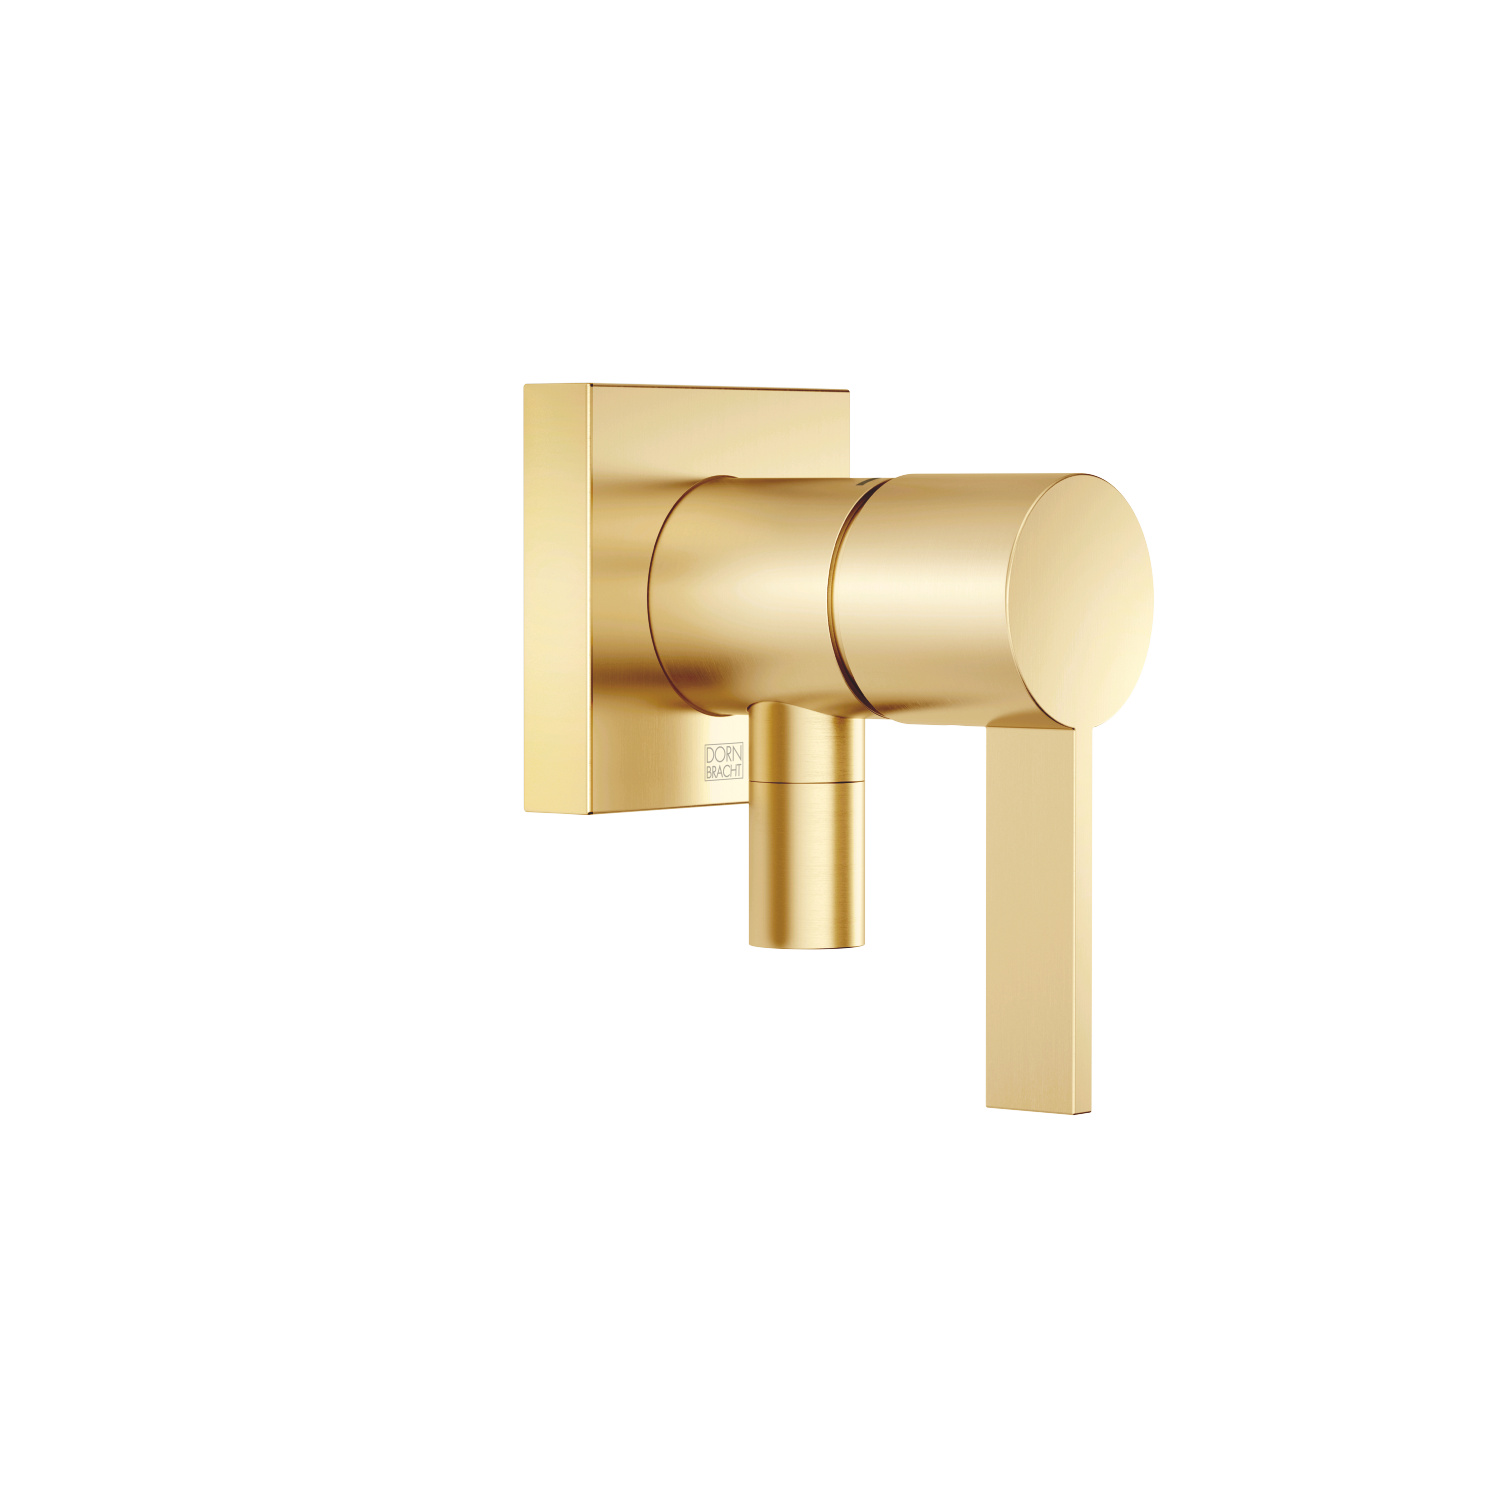 Concealed single-lever mixer with cover plate with integrated shower connection - brushed Durabrass - 36 045 970-28